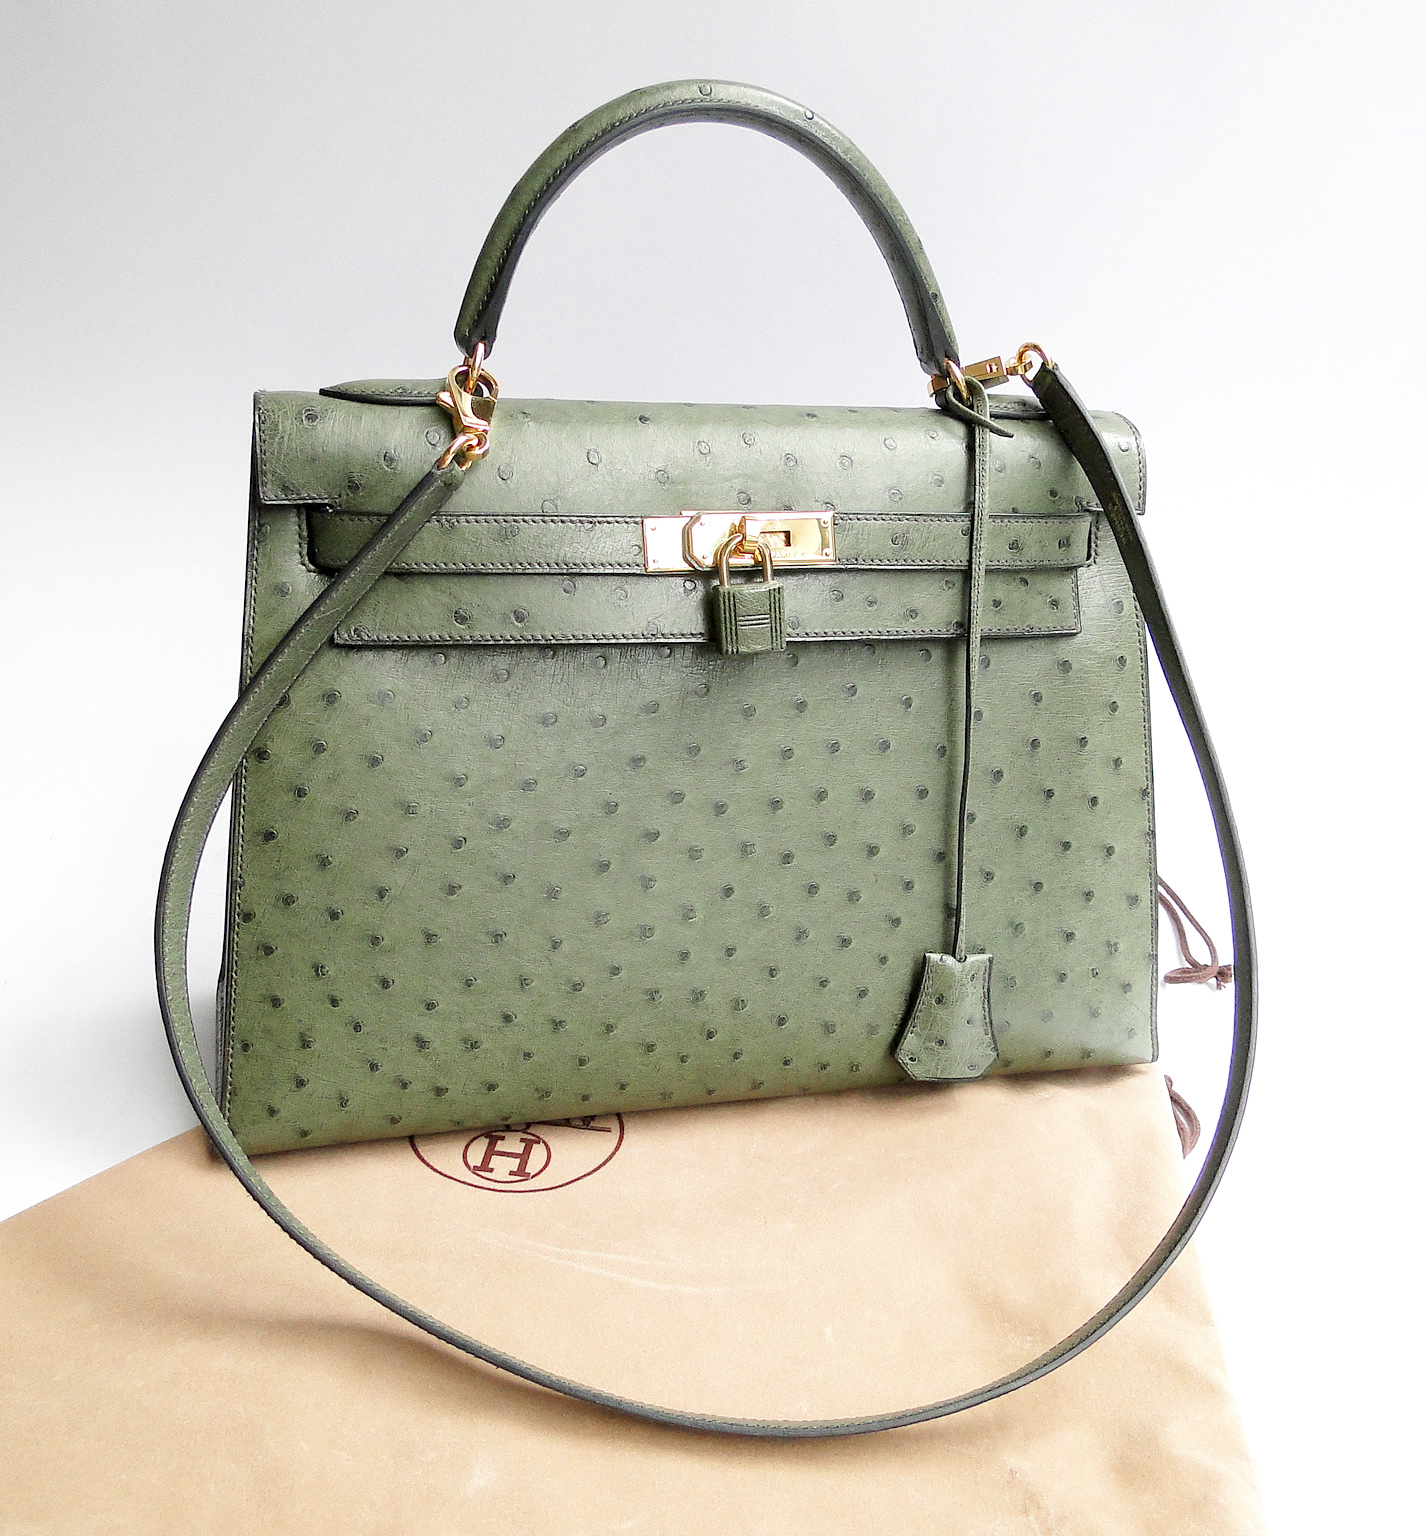 hermes kelly bag price range